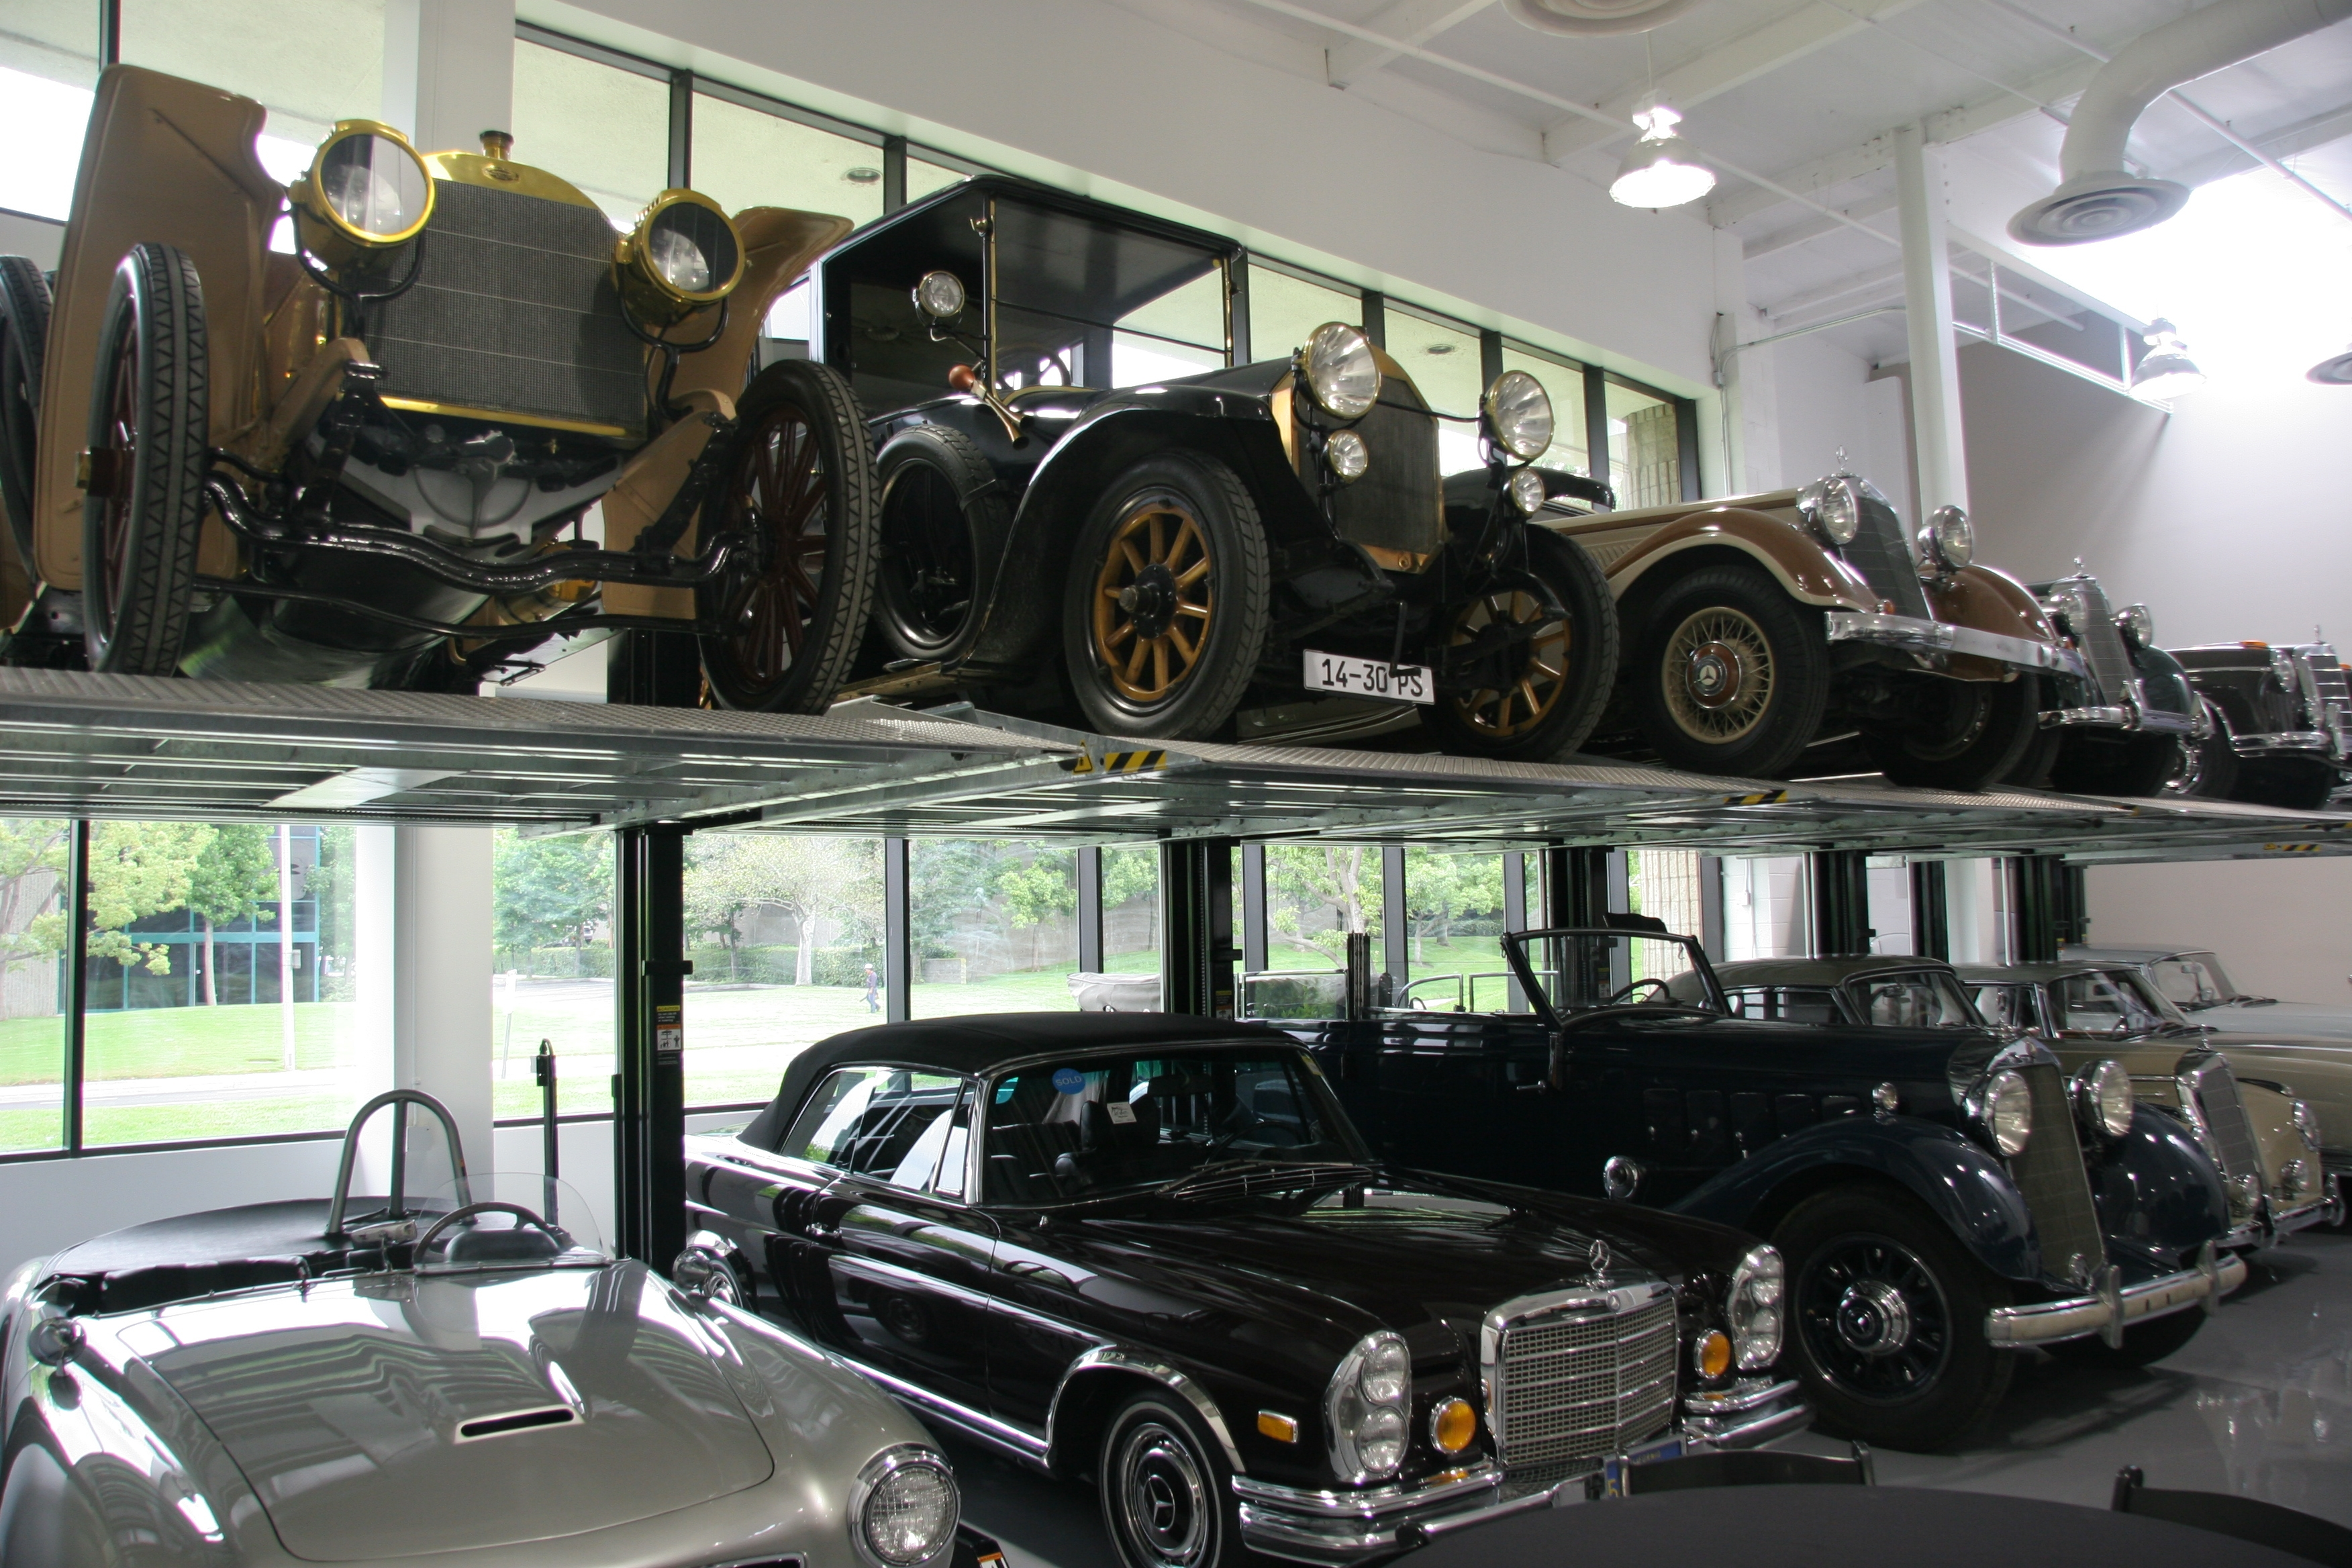 Cool car places mercedes benz classic center irvine ca for Mercedes benz training center